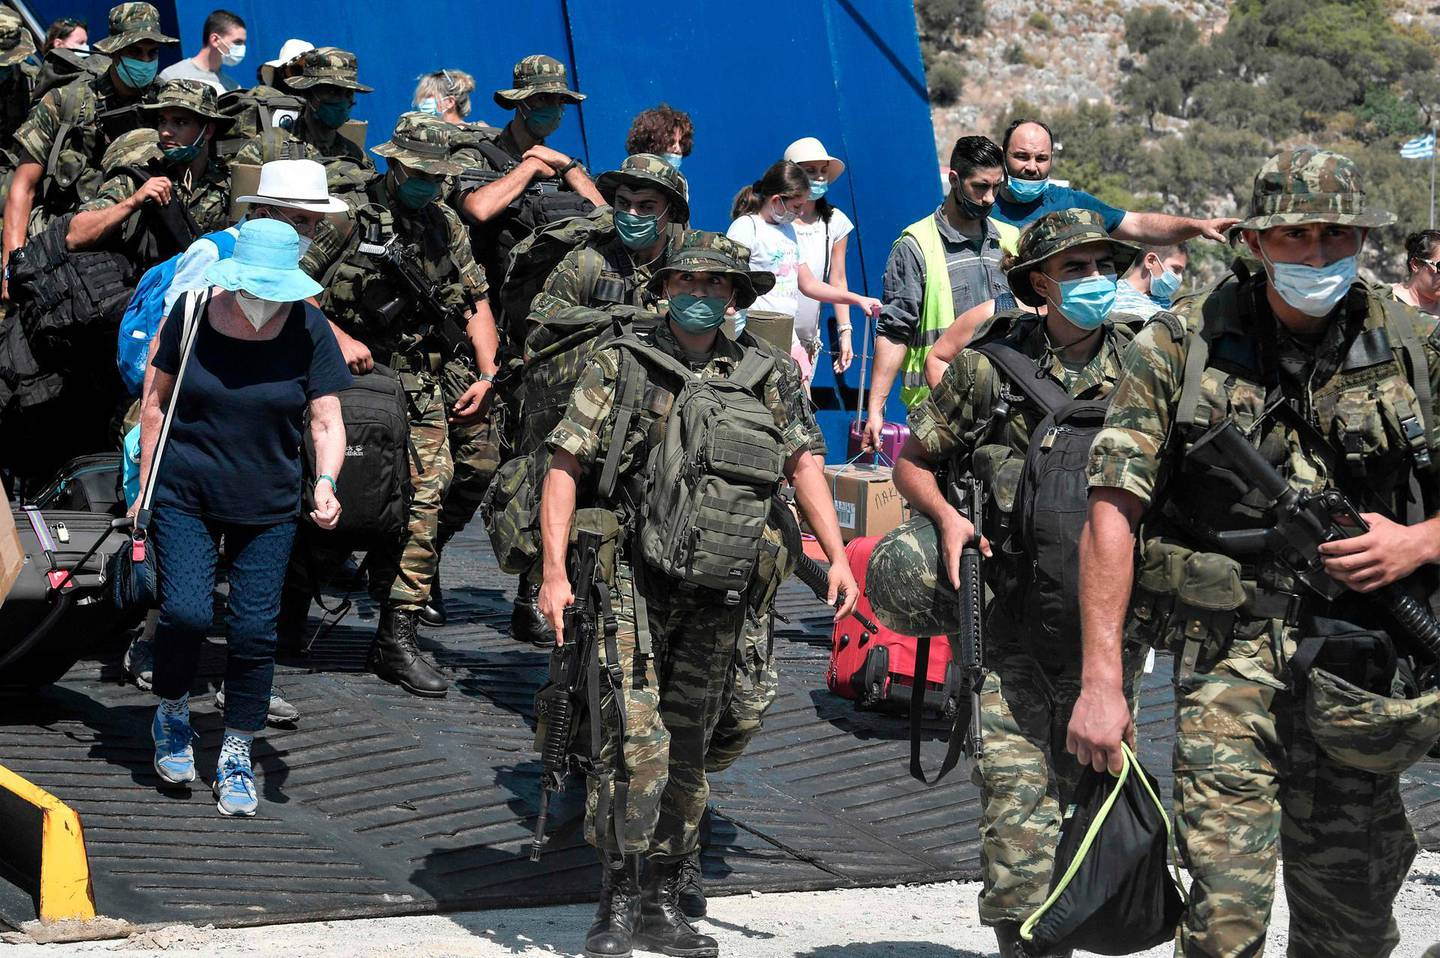 Greek soldiers and tourists deisembark from a ferry at the port of the tiny Greek island of Kastellorizo, officially Megisti, the most south-eastern inhabited Greek island in the Dodecanese, situated two kilometers off the south coast of Turkey.  / AFP / Louisa GOULIAMAKI